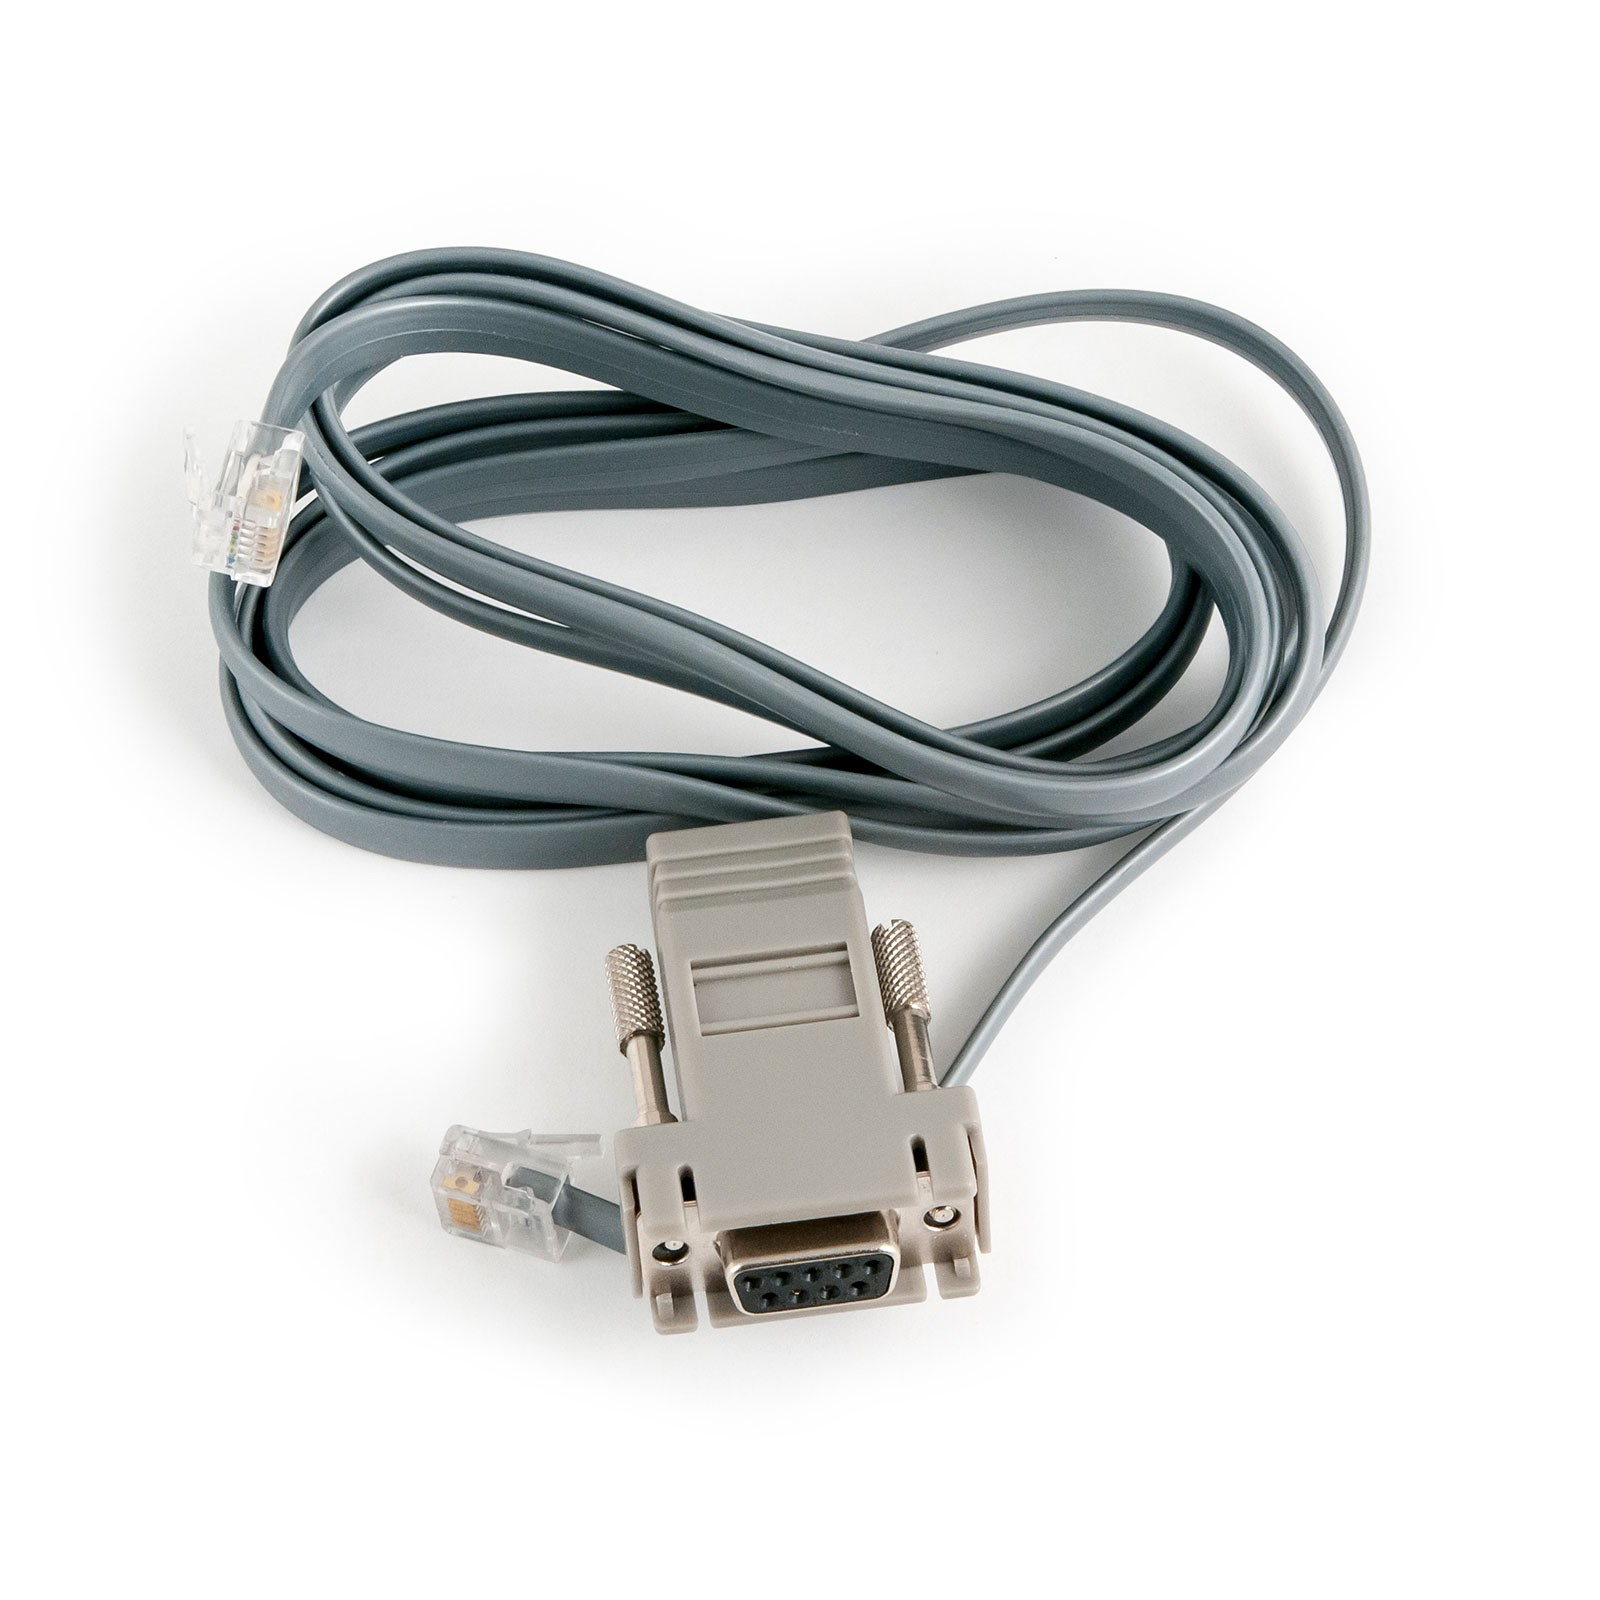 Secura Key SKQUICKCONN DB9 to RJ11 6 ft Cable | SecuraKey Store